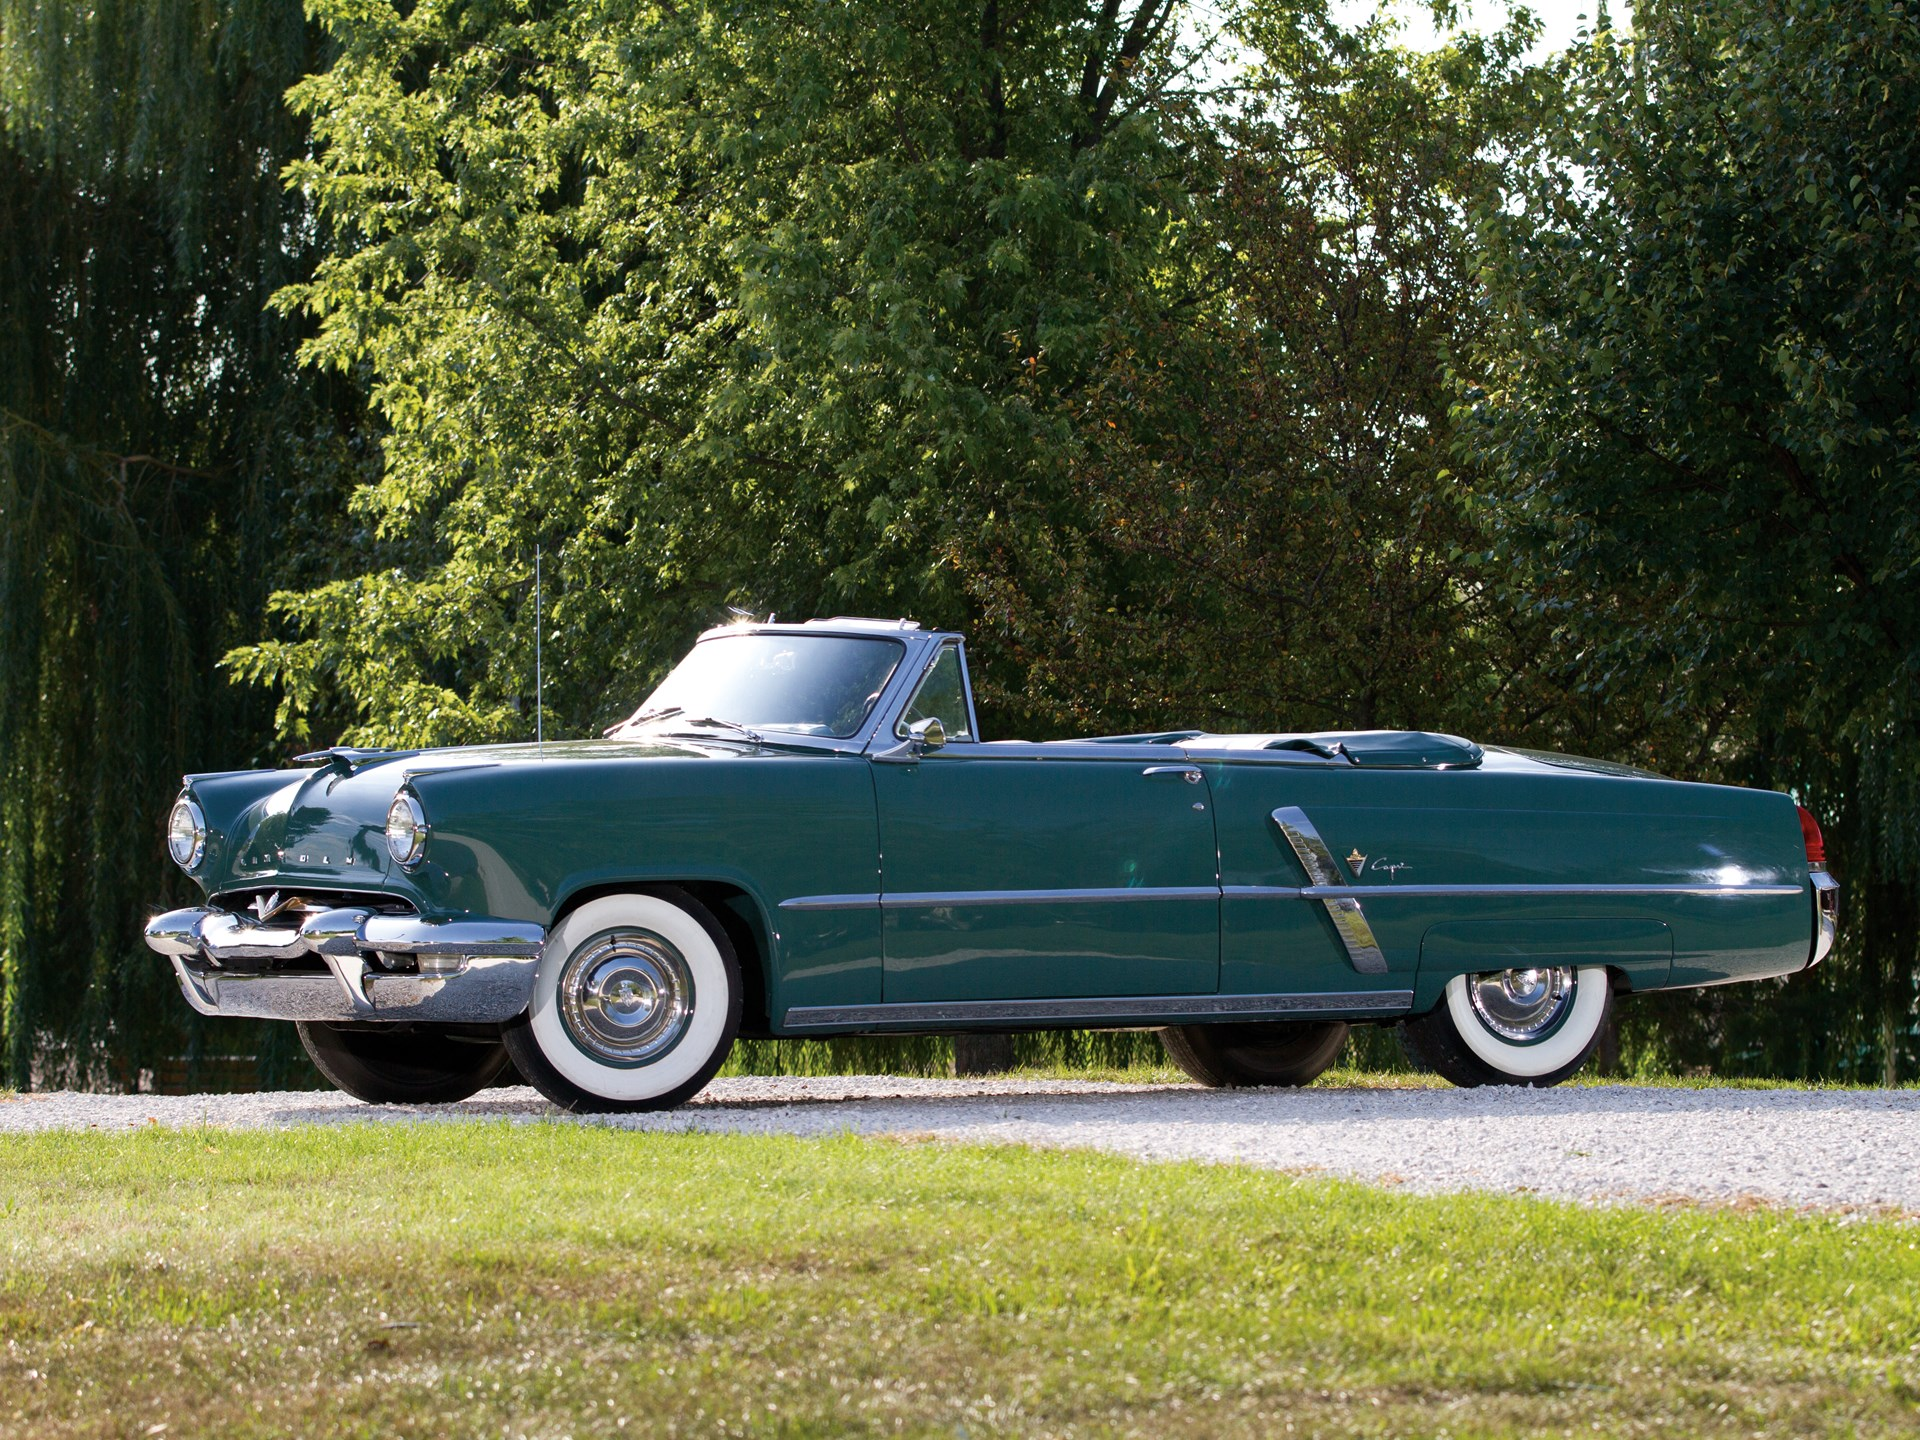 1953 Lincoln Capri Convertible Specifications Continental Rm Sothebys The Charlie Thomas 1920x1440